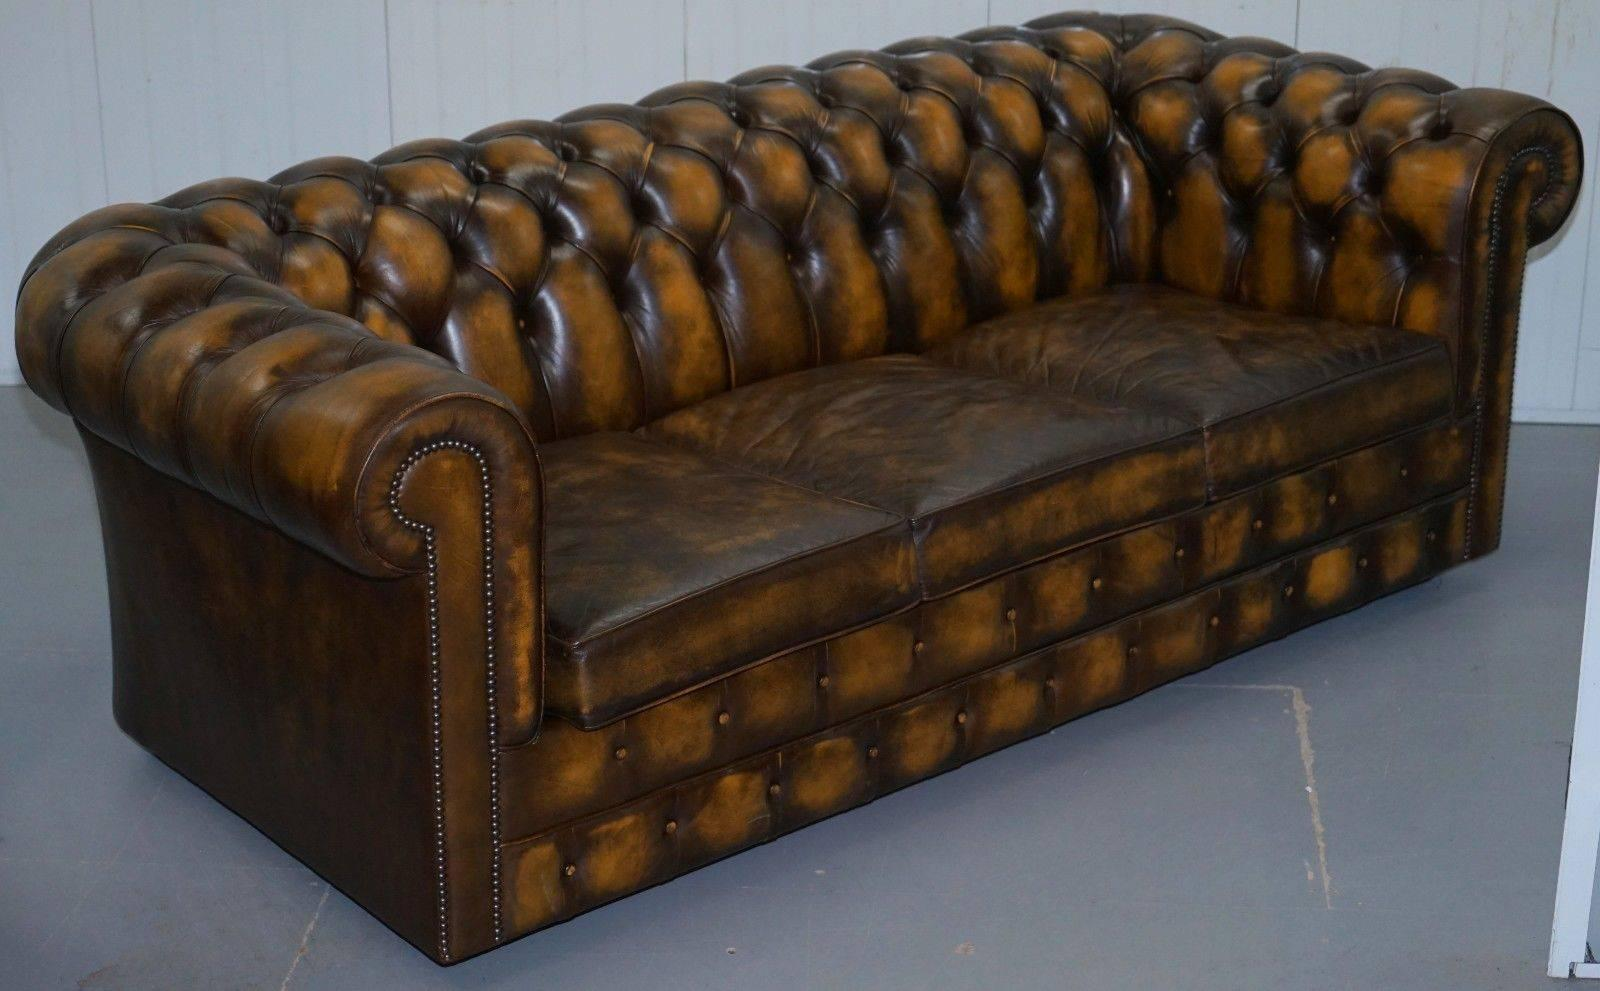 Substantial Hand Dyed Aged Brown Leather Chesterfield Sofa Bed from